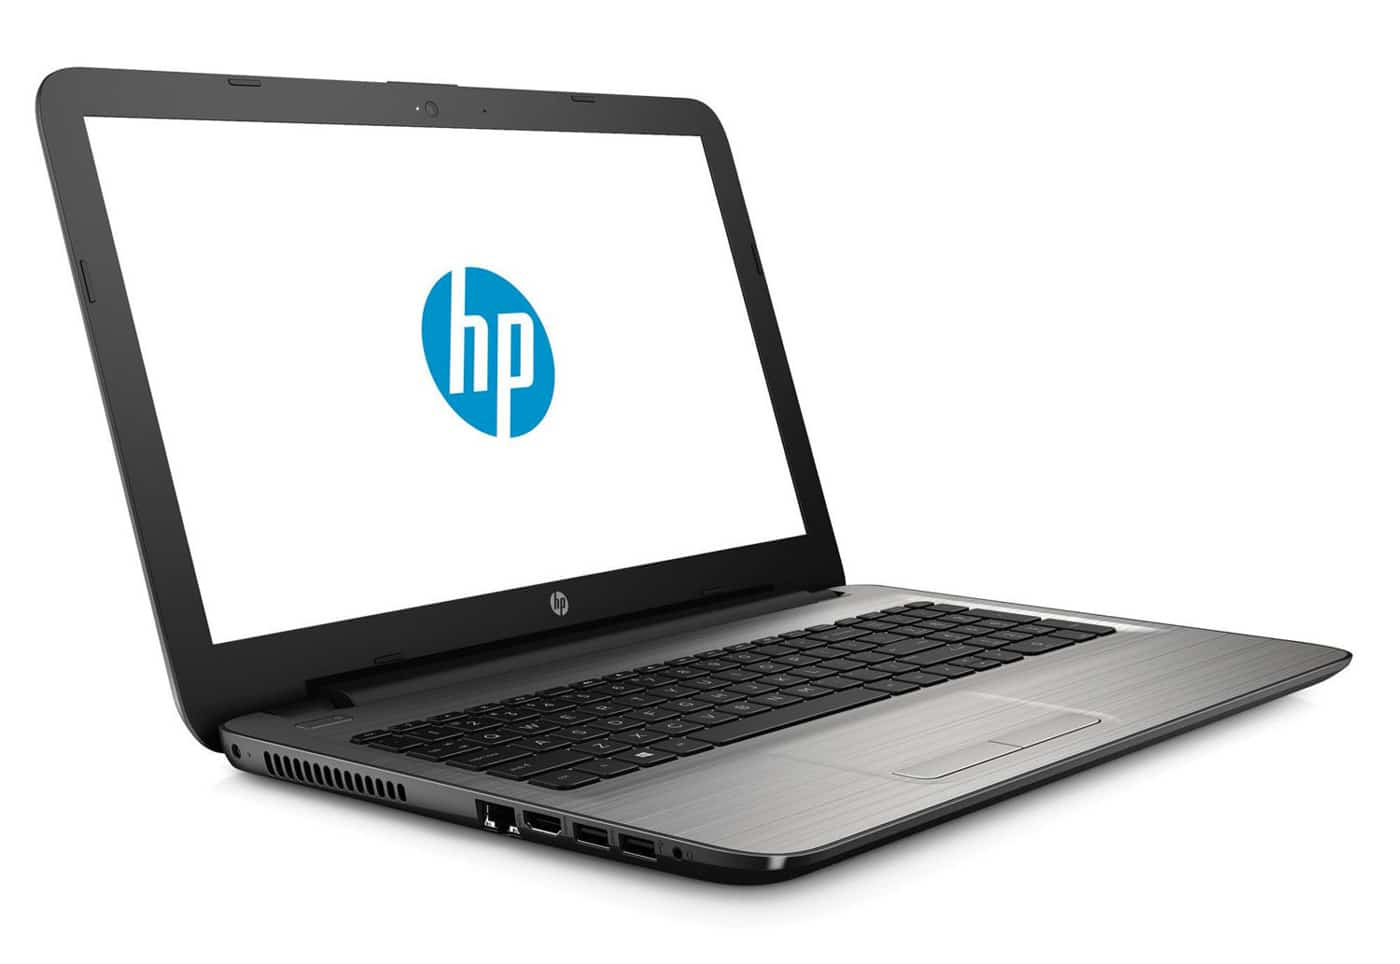 HP 15-ay127nf, PC portable 15 pouces multimédia i5 Kaby Lake 8 Go R5 à 665€